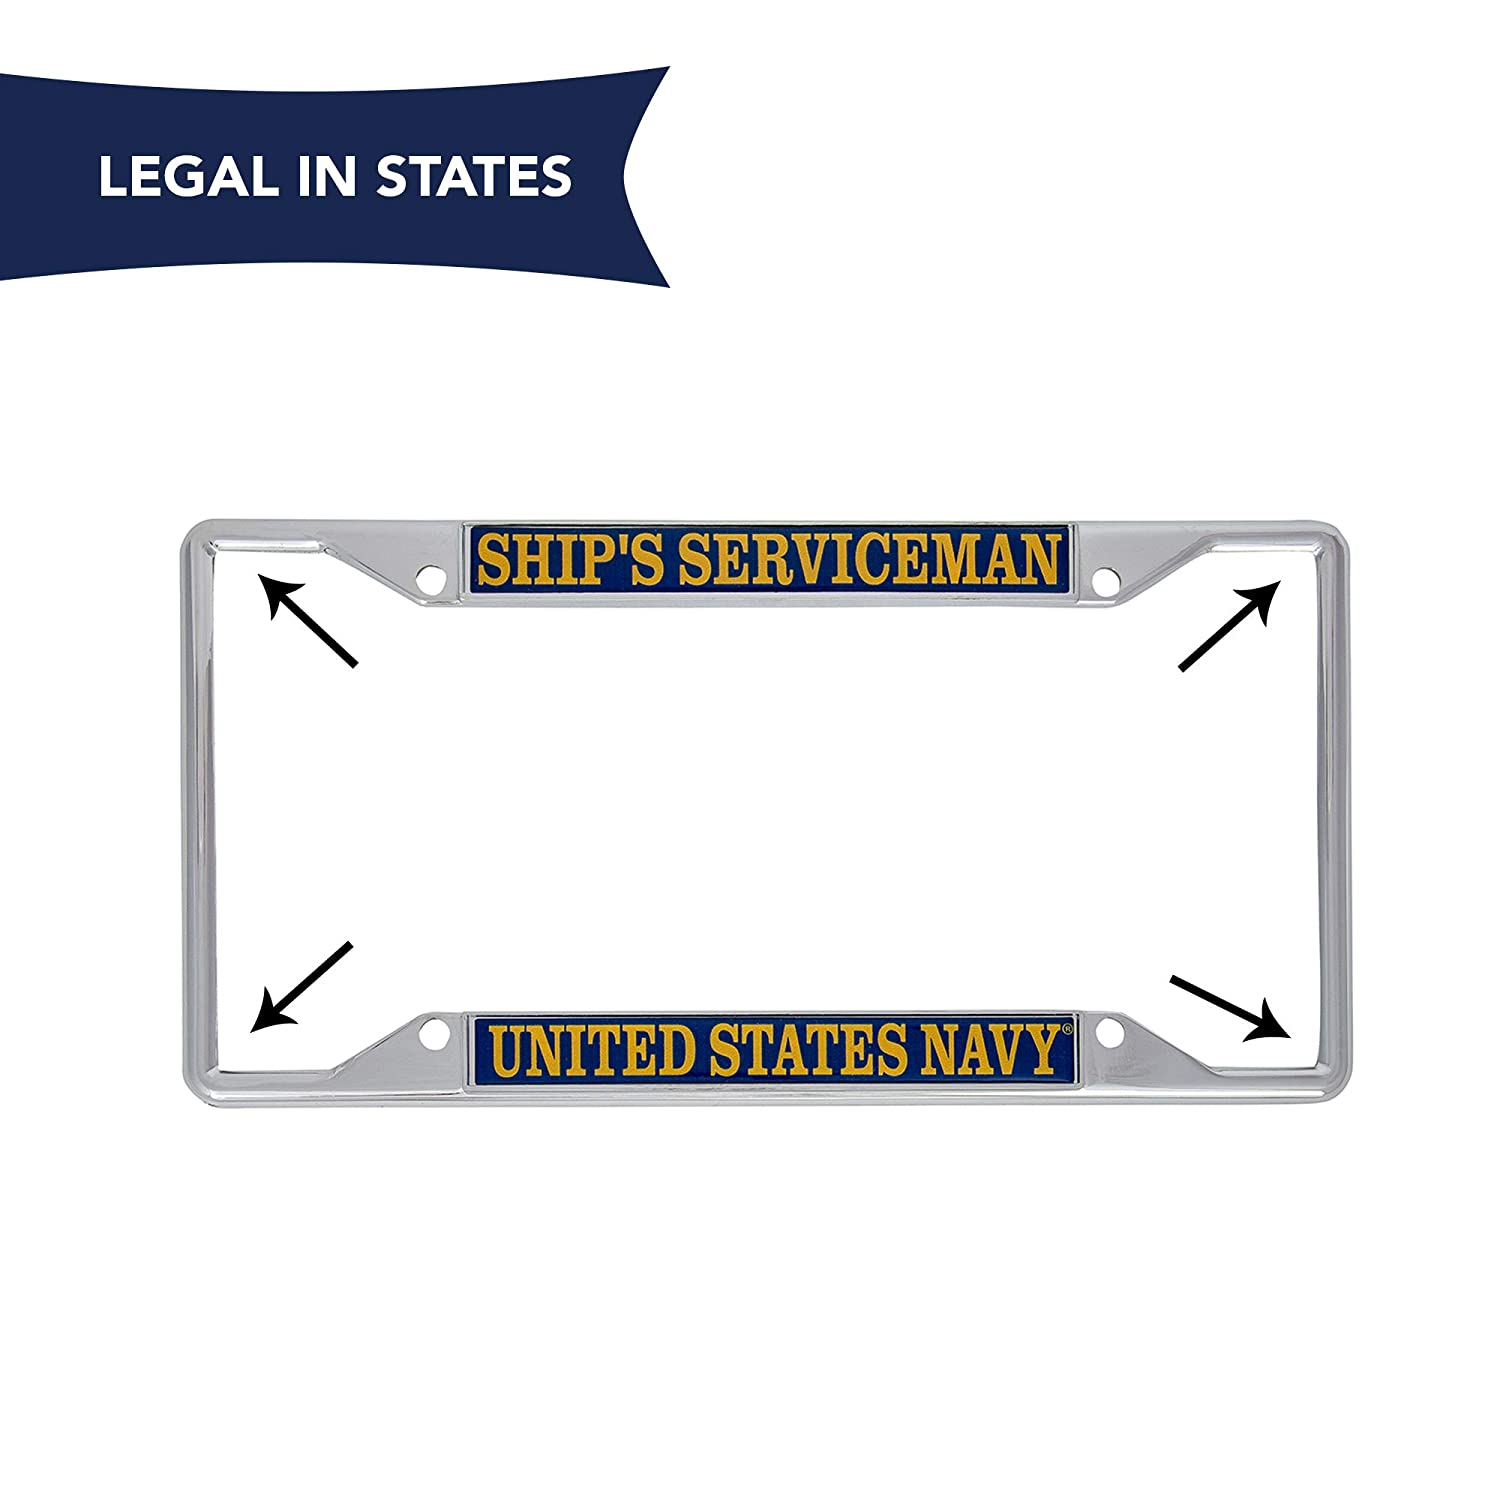 Desert Cactus US Navy Ships Serviceman Enlisted Rating Insignia License Plate Frame for Front Back of Car Officially Licensed United States